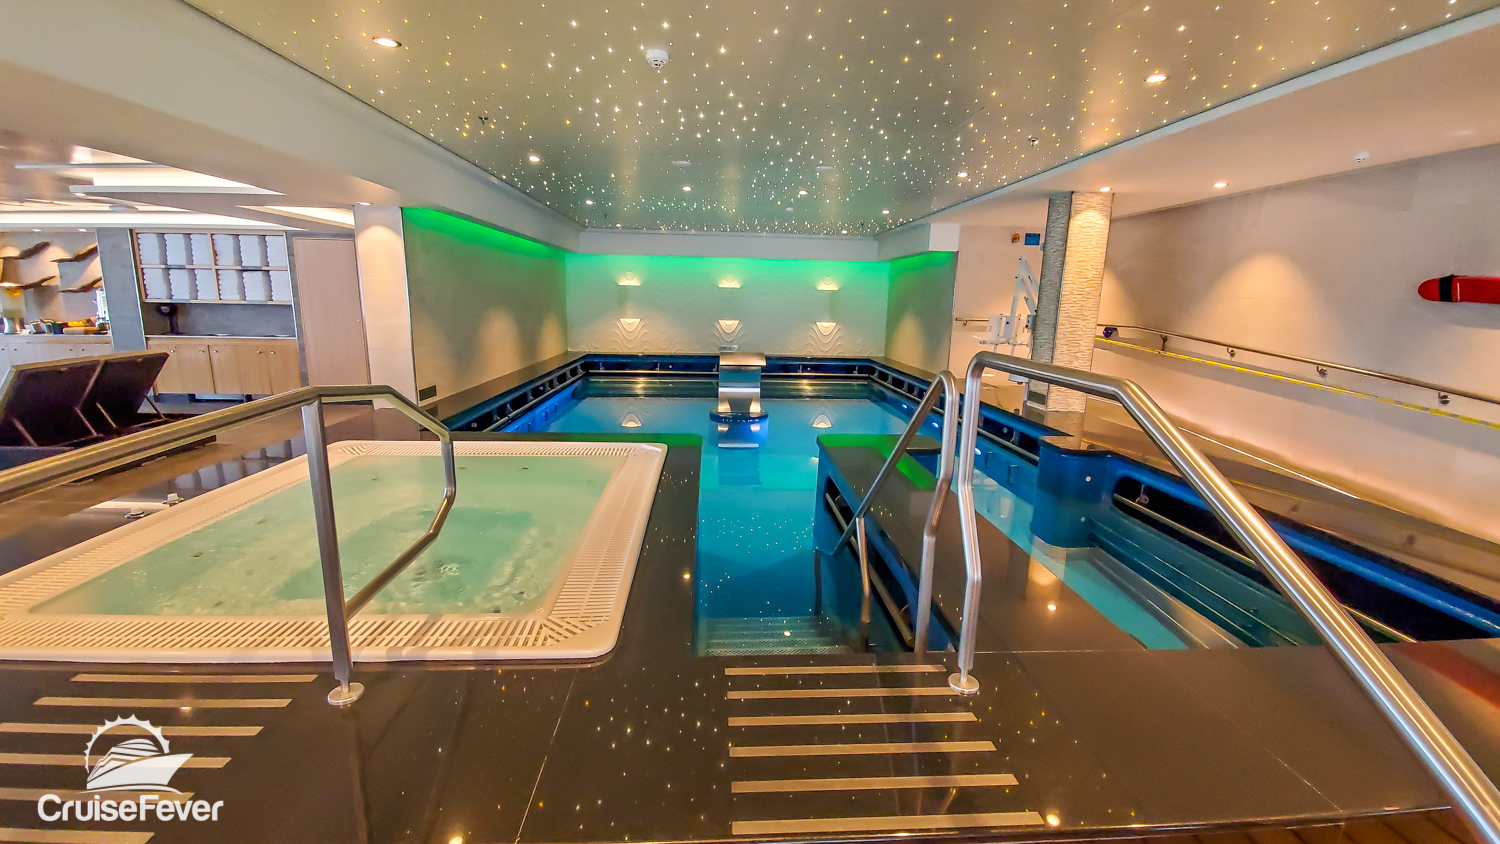 thalassotherapy pool in thermal suite